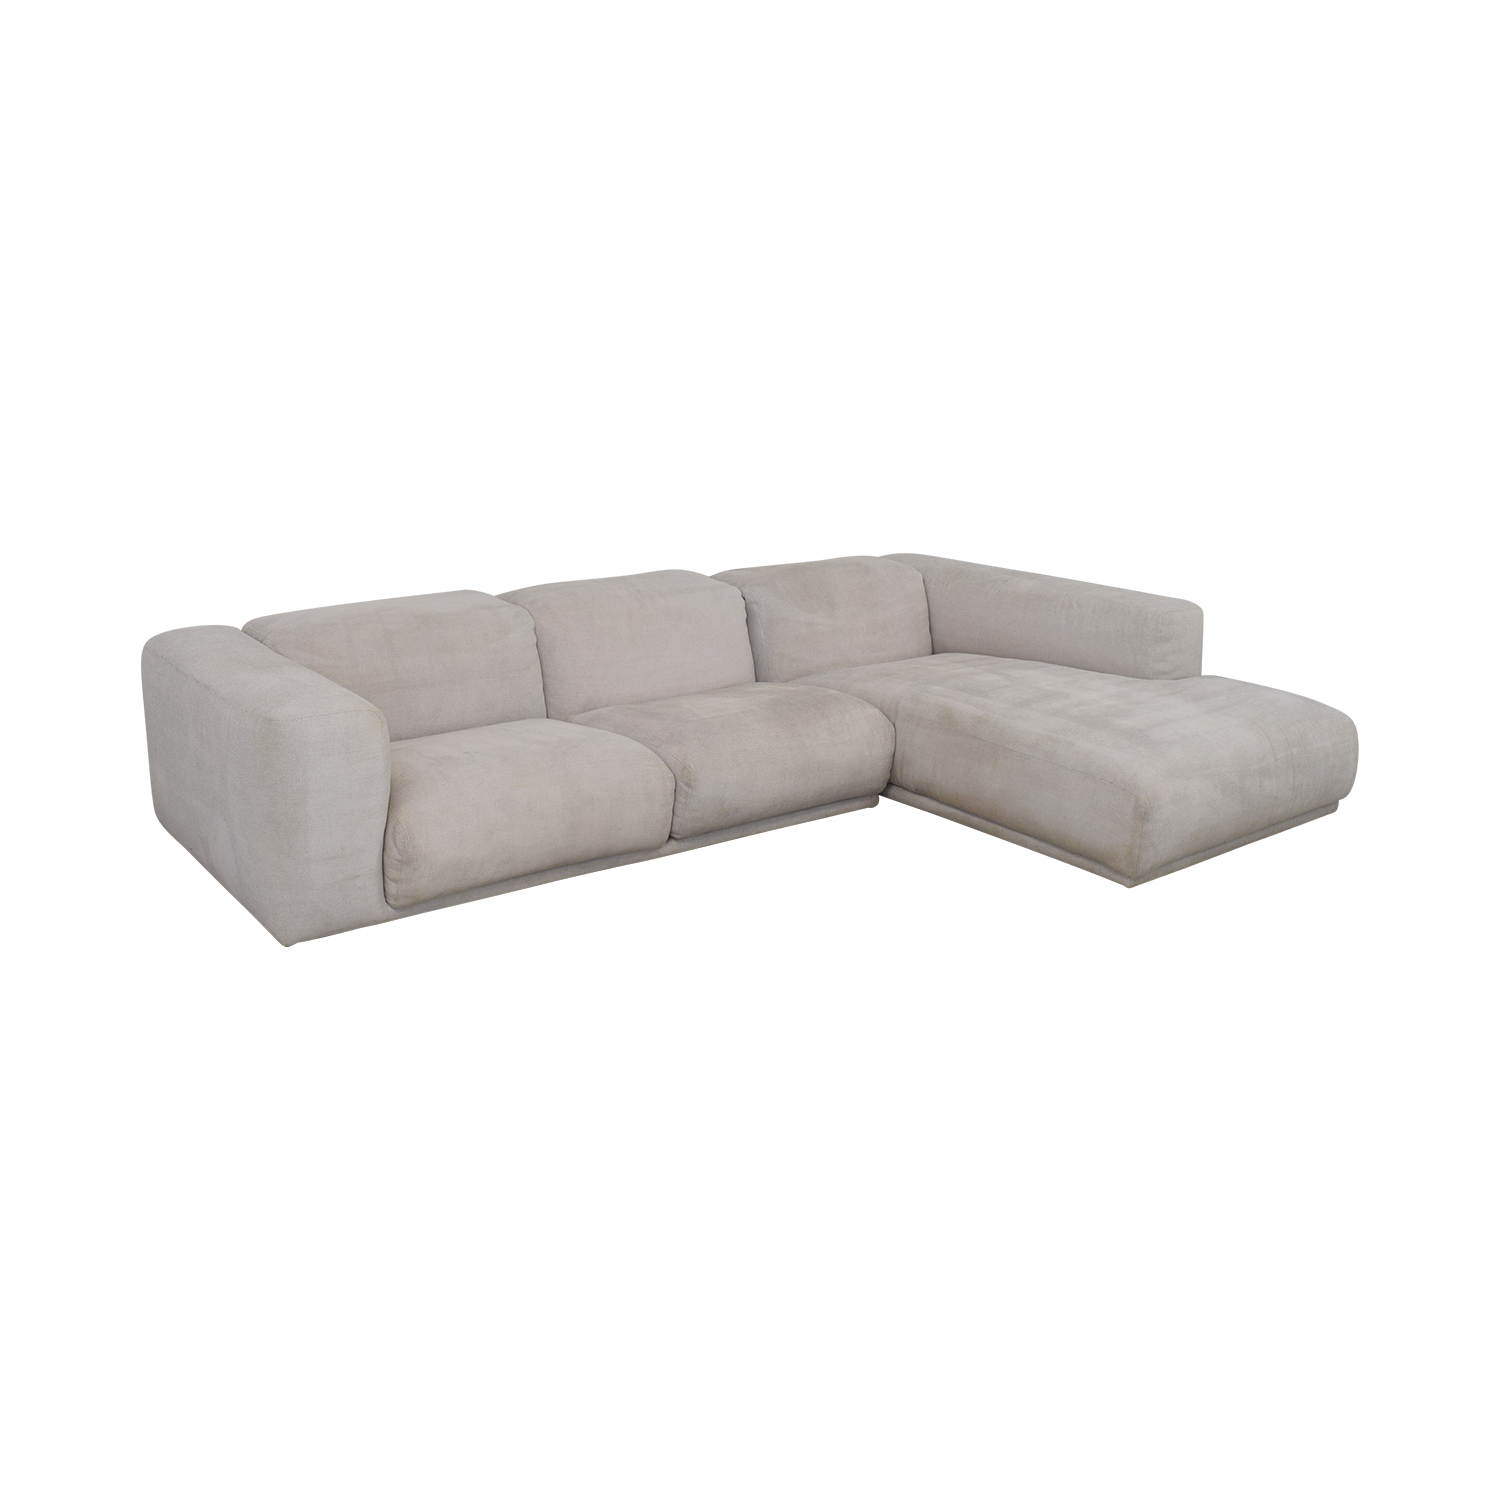 Design Within Reach Design Within Reach Kelston Sectional with Chaise second hand